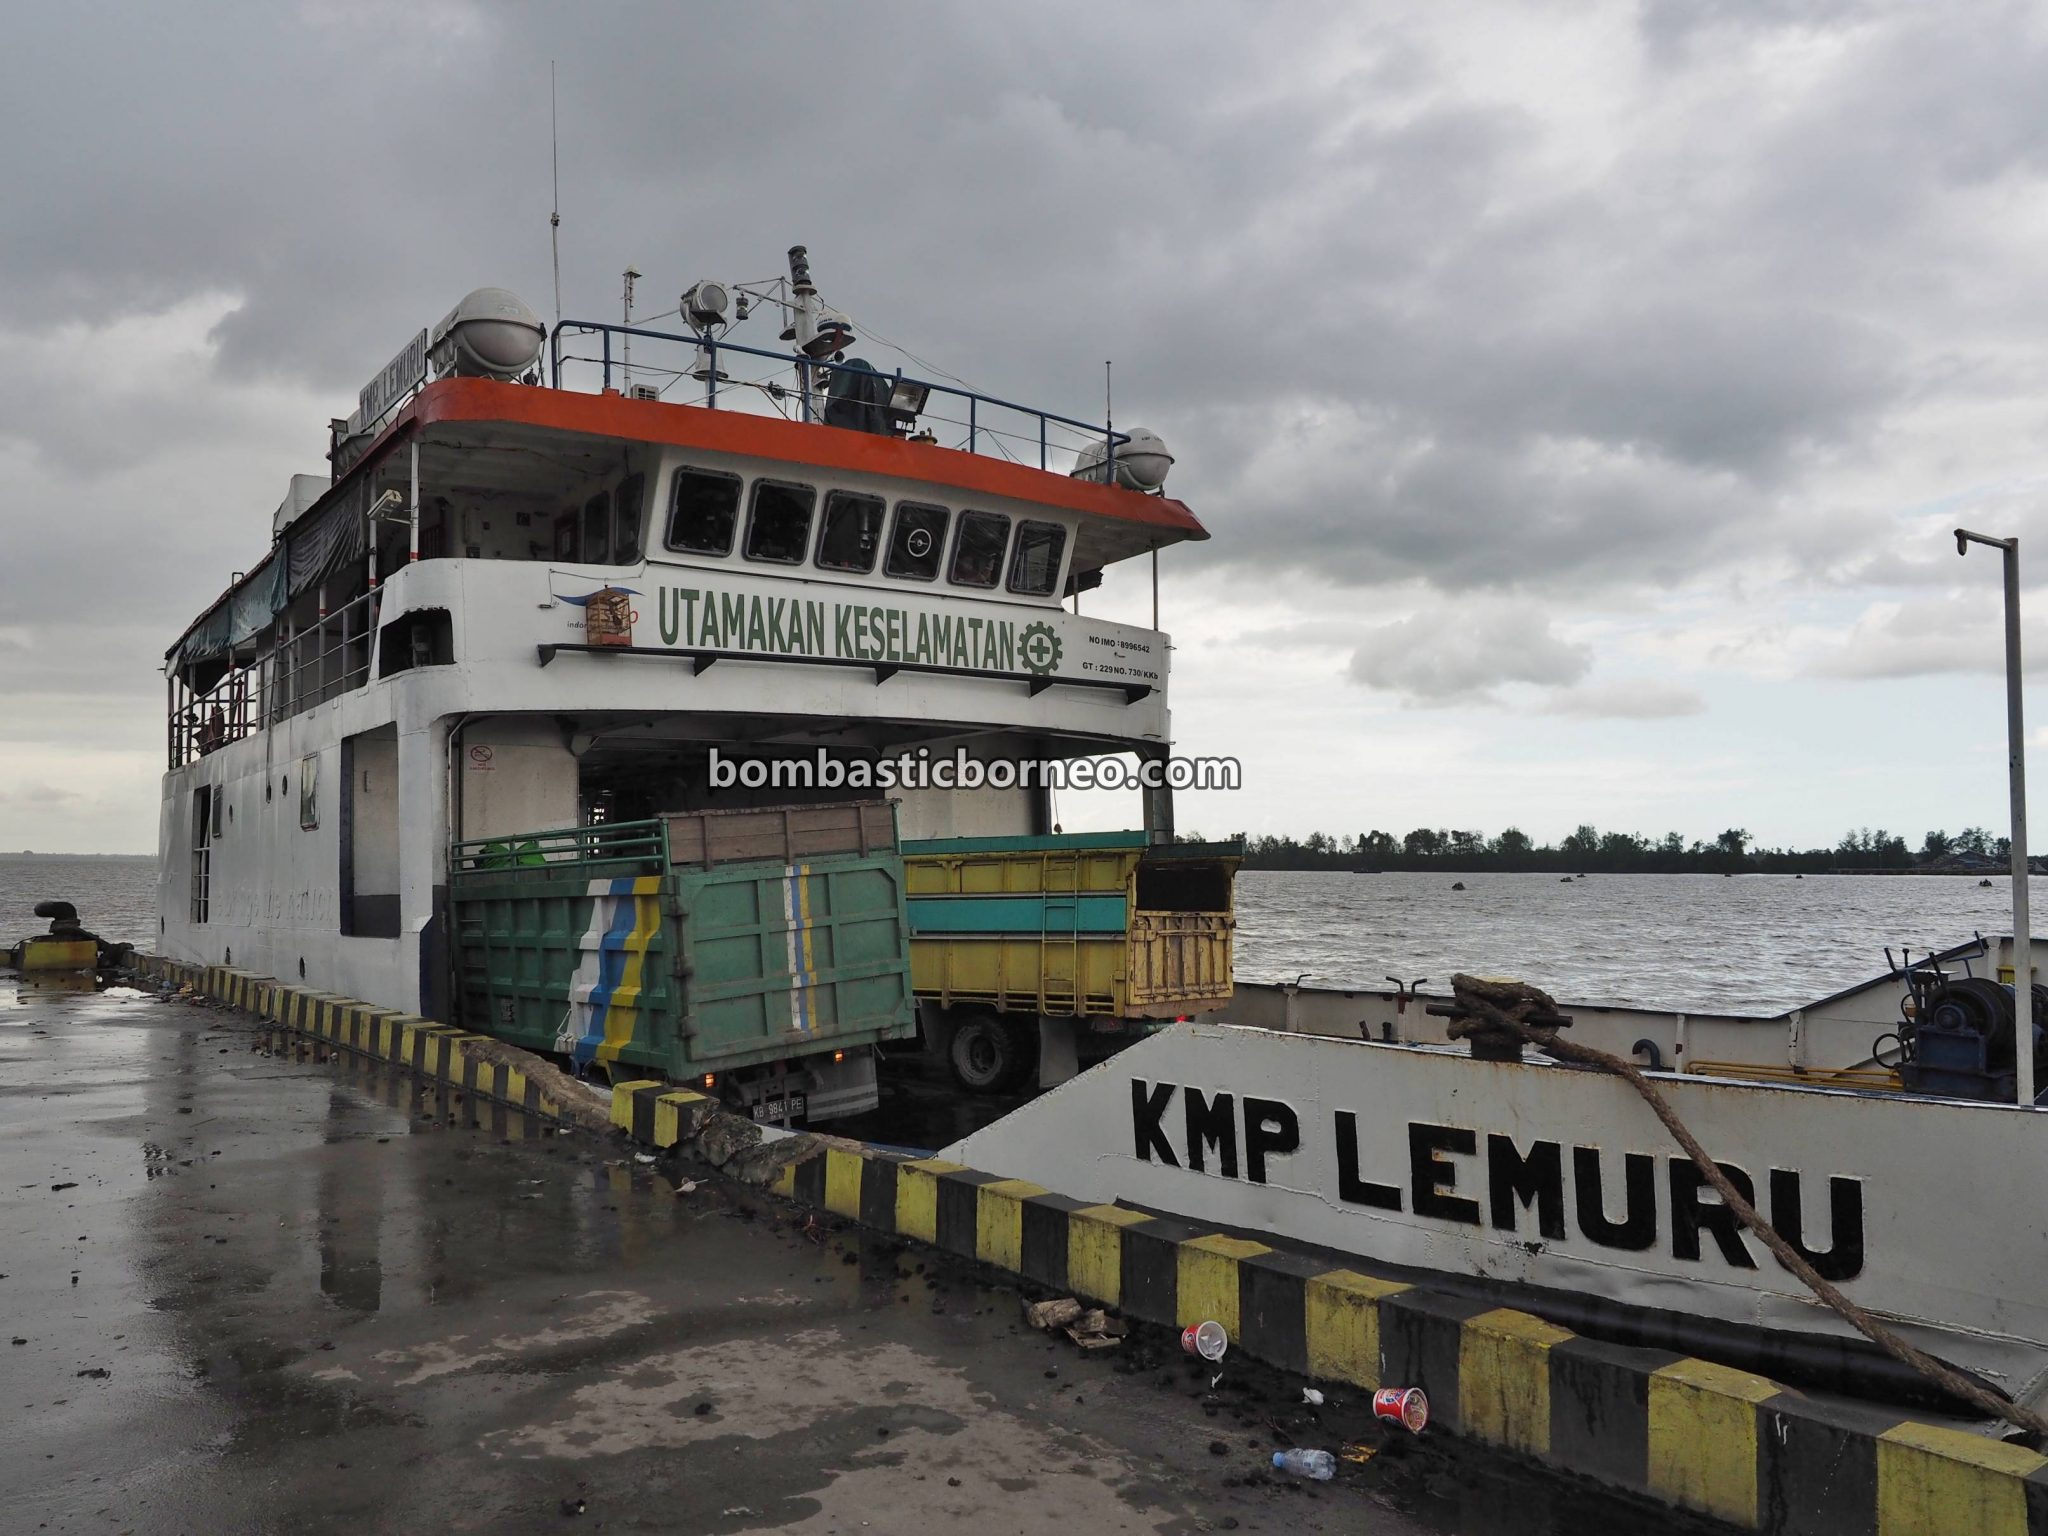 adventure, traditional, Tekarang Ferry port, Sambas, Indonesia, Kalimantan Barat, Jawai Selatan, Sentebang, Tourism, travel guide, backpackers, Trans Borneo, 探索婆罗洲游踪, 印尼西加里曼丹, 三发马来渔村